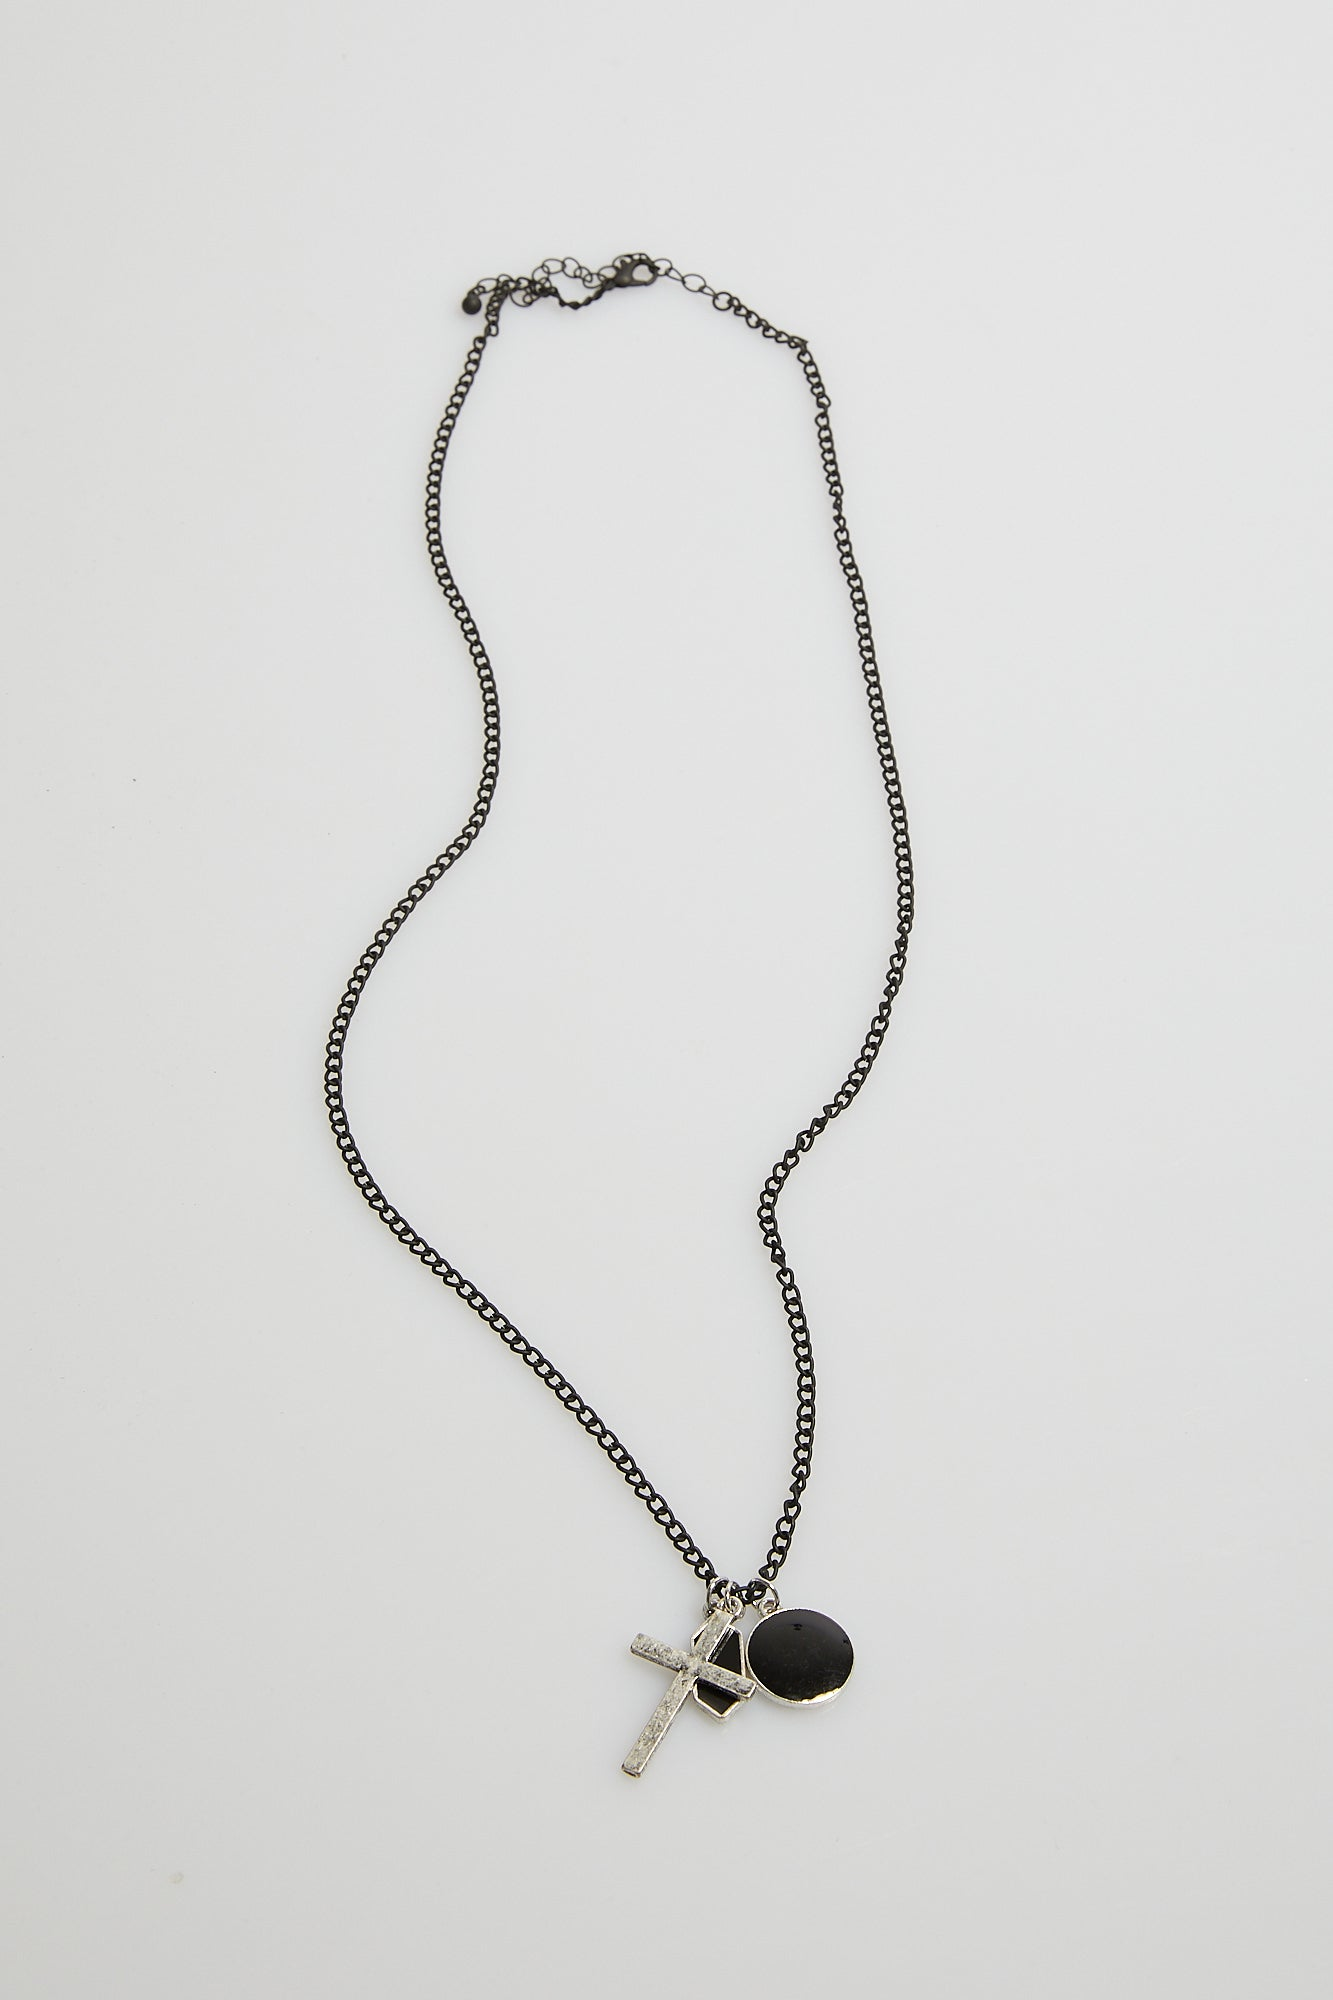 NTH Multi Pendant Necklace Black NTH20201024